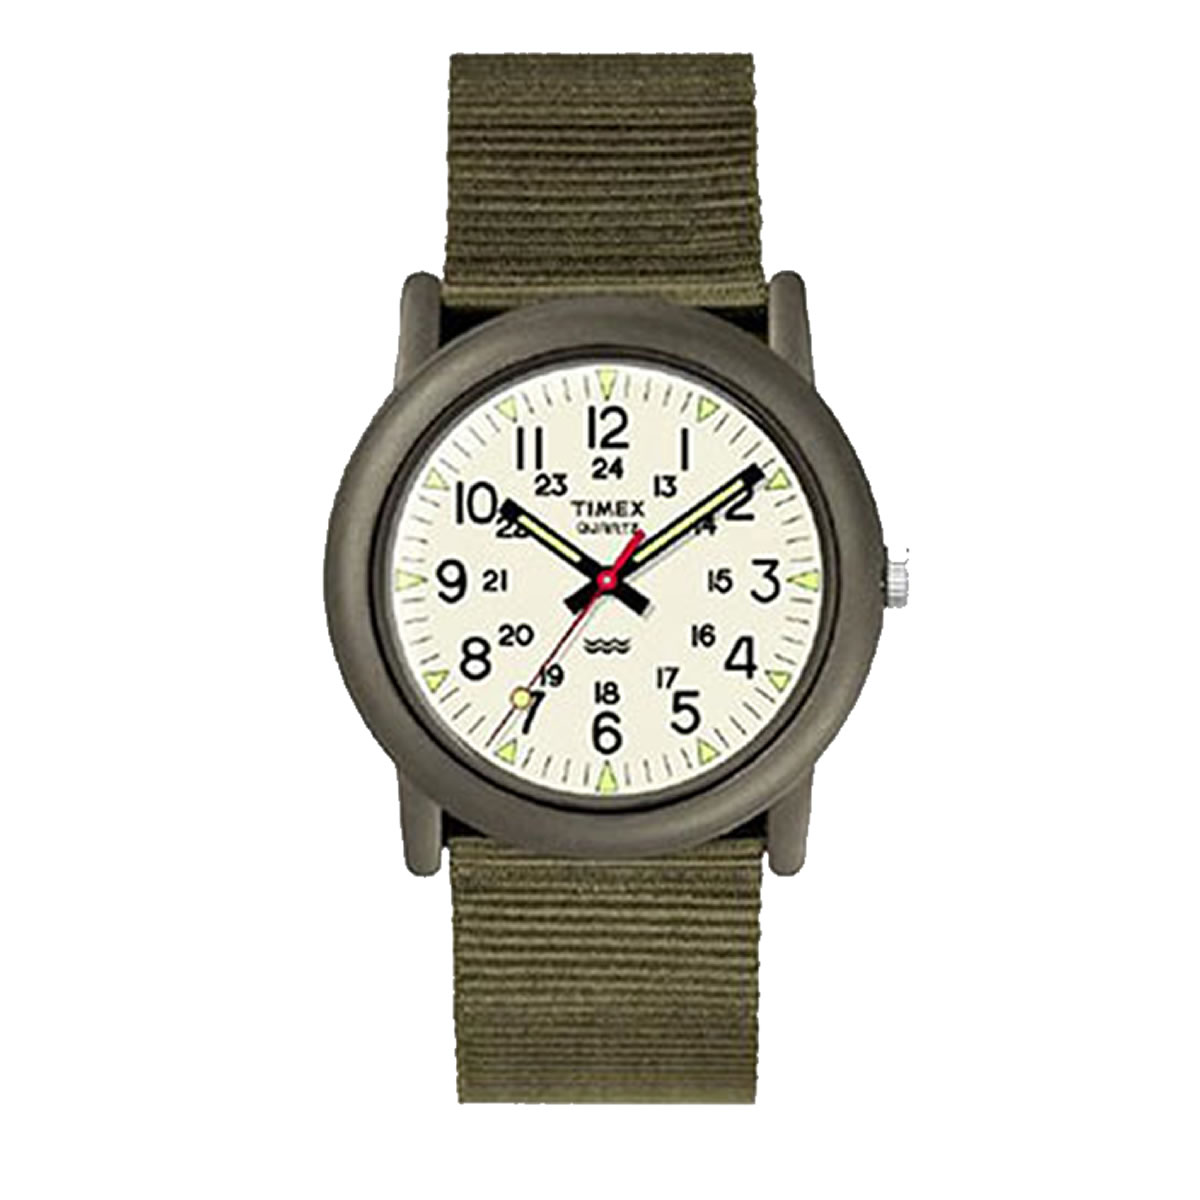 TIMEX Camper  JAPAN Limited カーキ 34mm TW2P59800 機能詳細